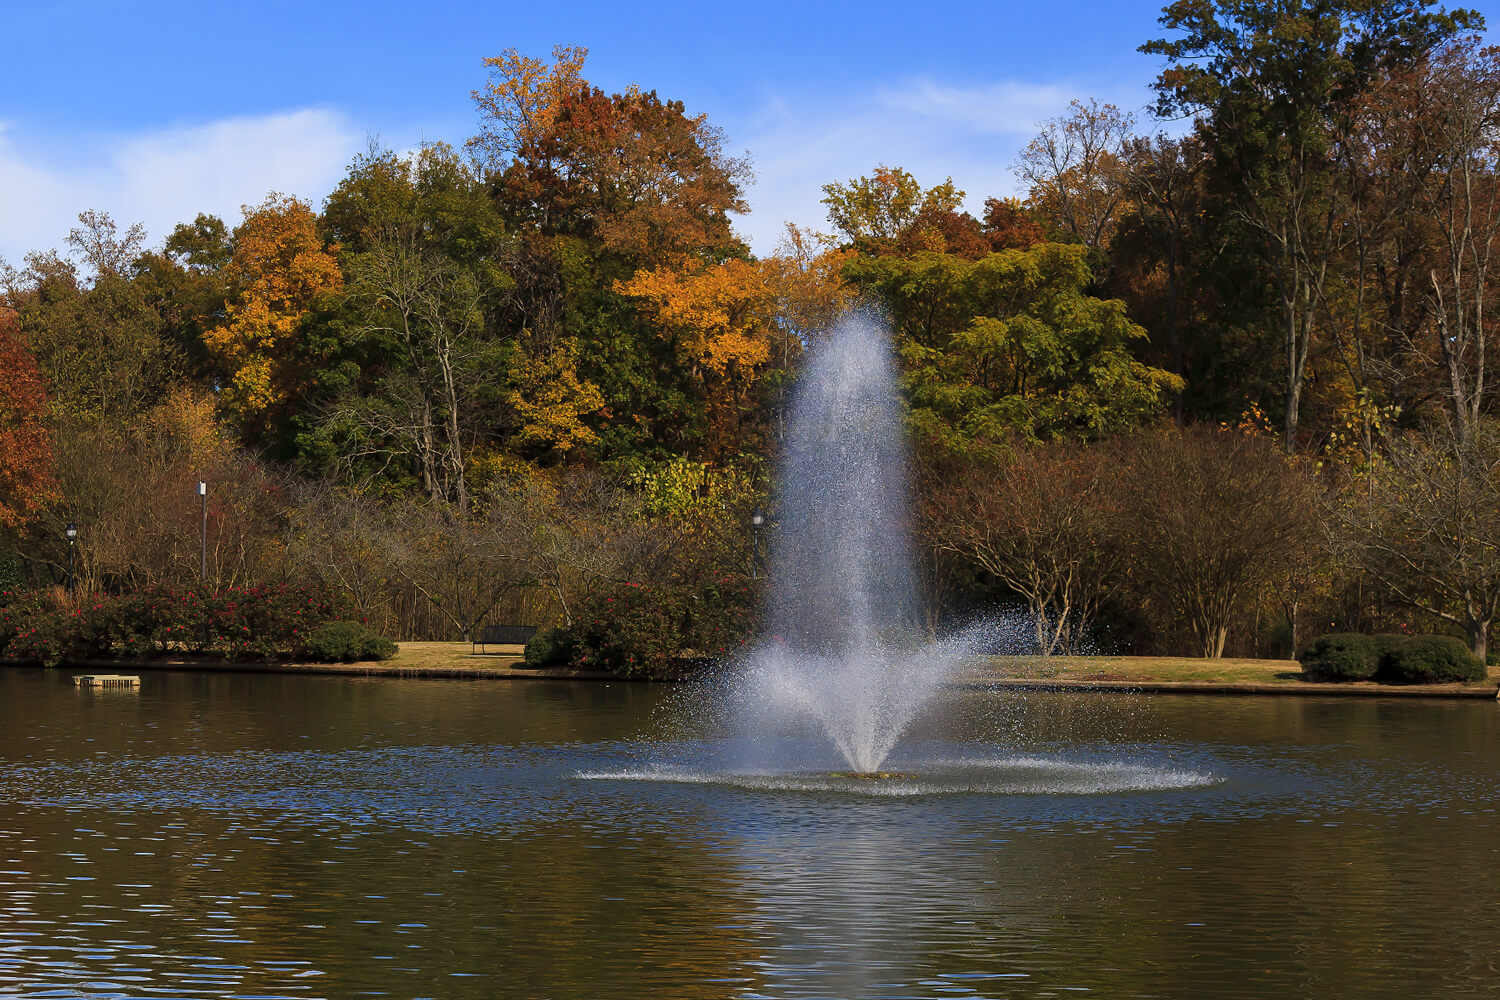 One of Otterbine's Phoenix Aerating Fountains